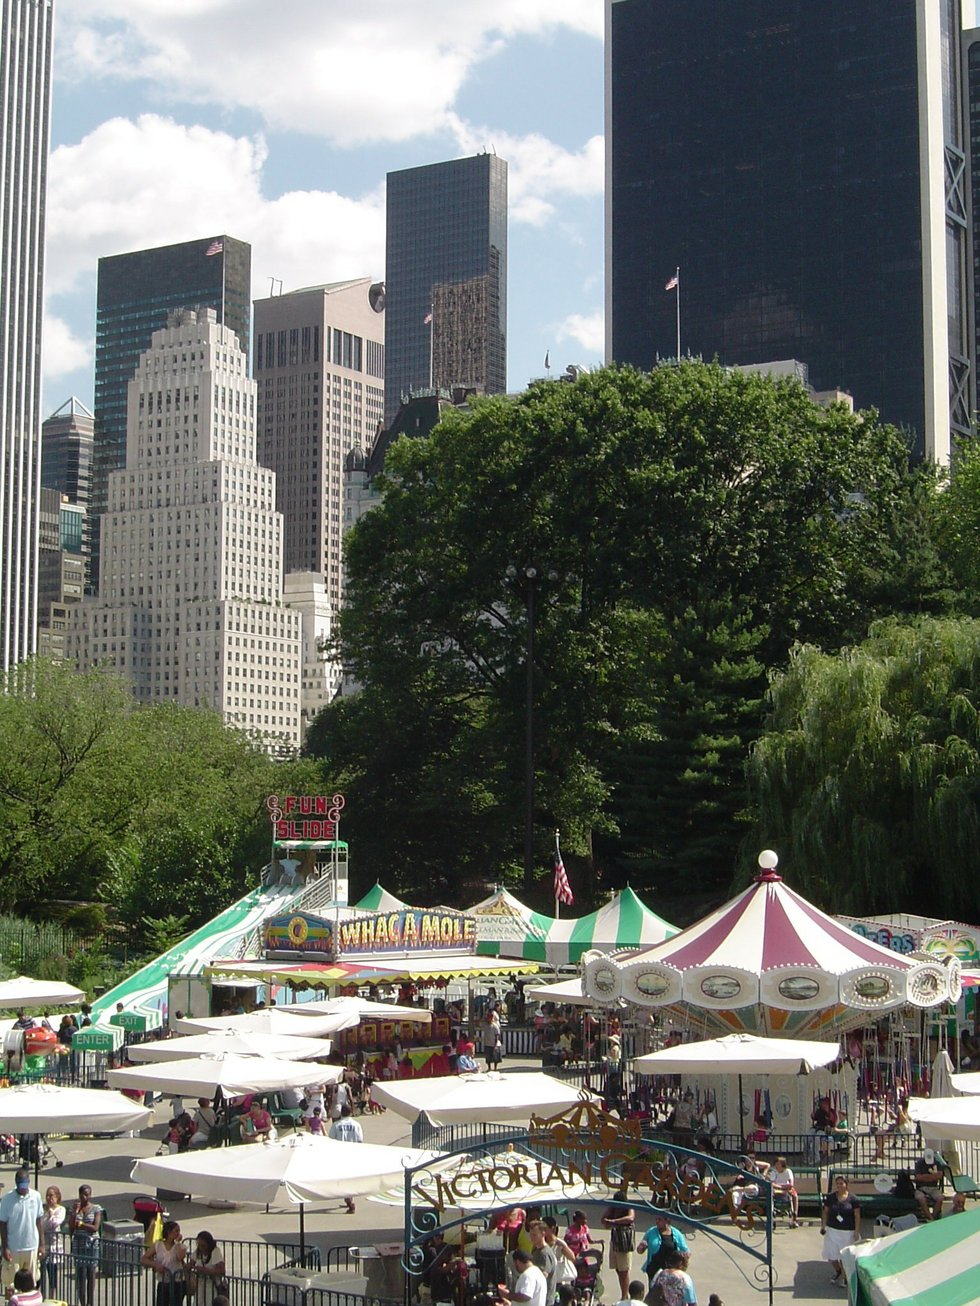 Tree-Covered Carnival